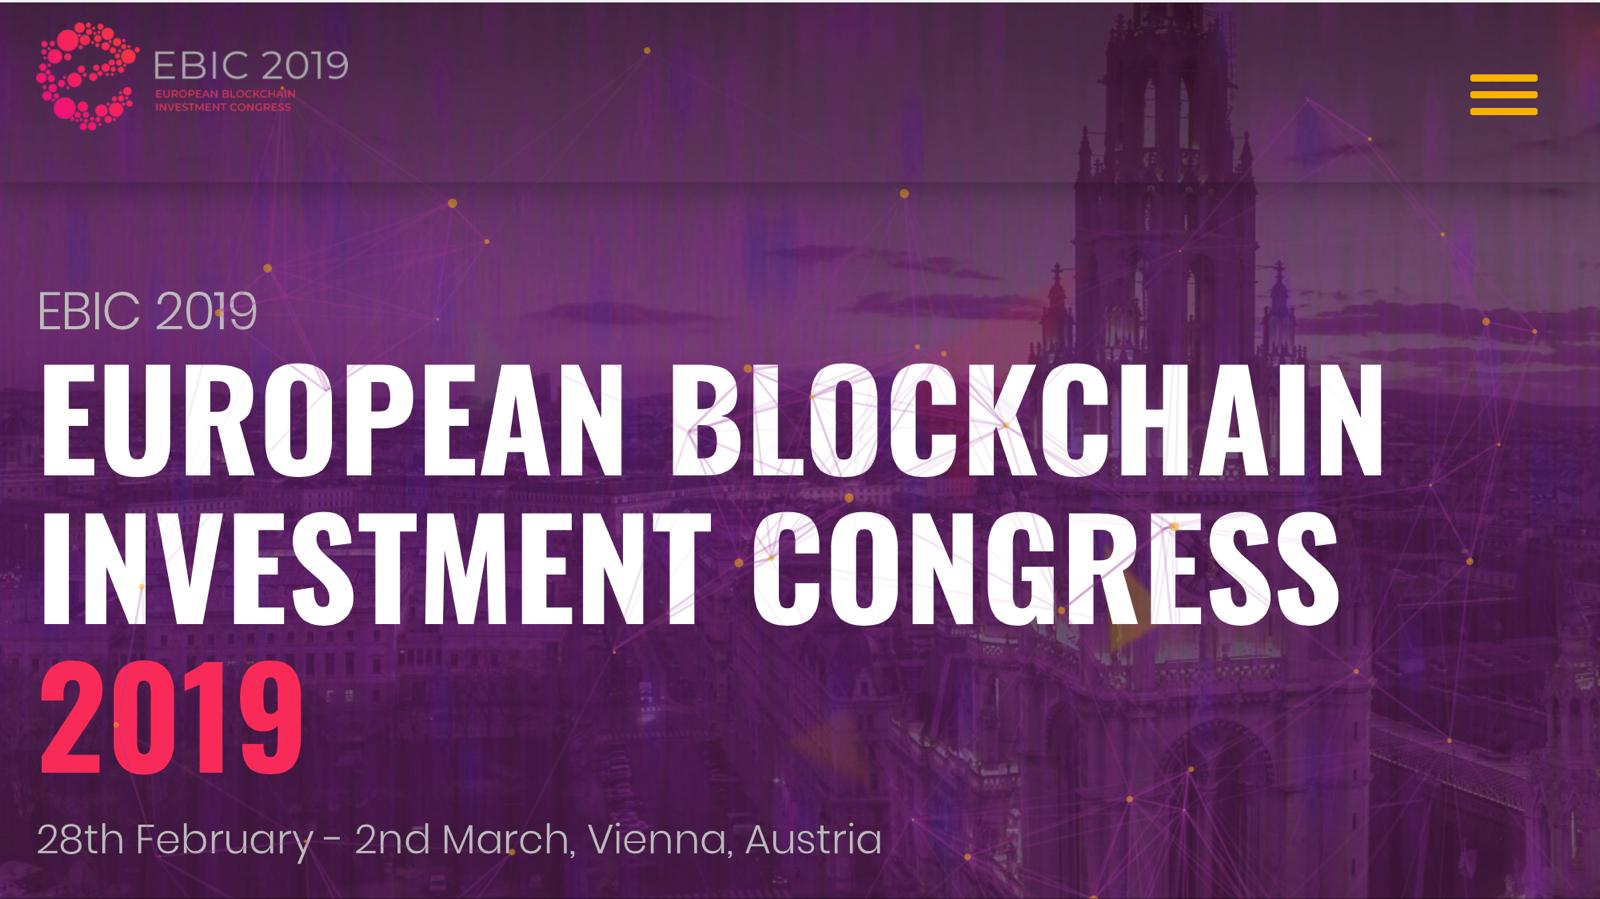 European Blockchain Investment Congress - Cripto-mineria.com